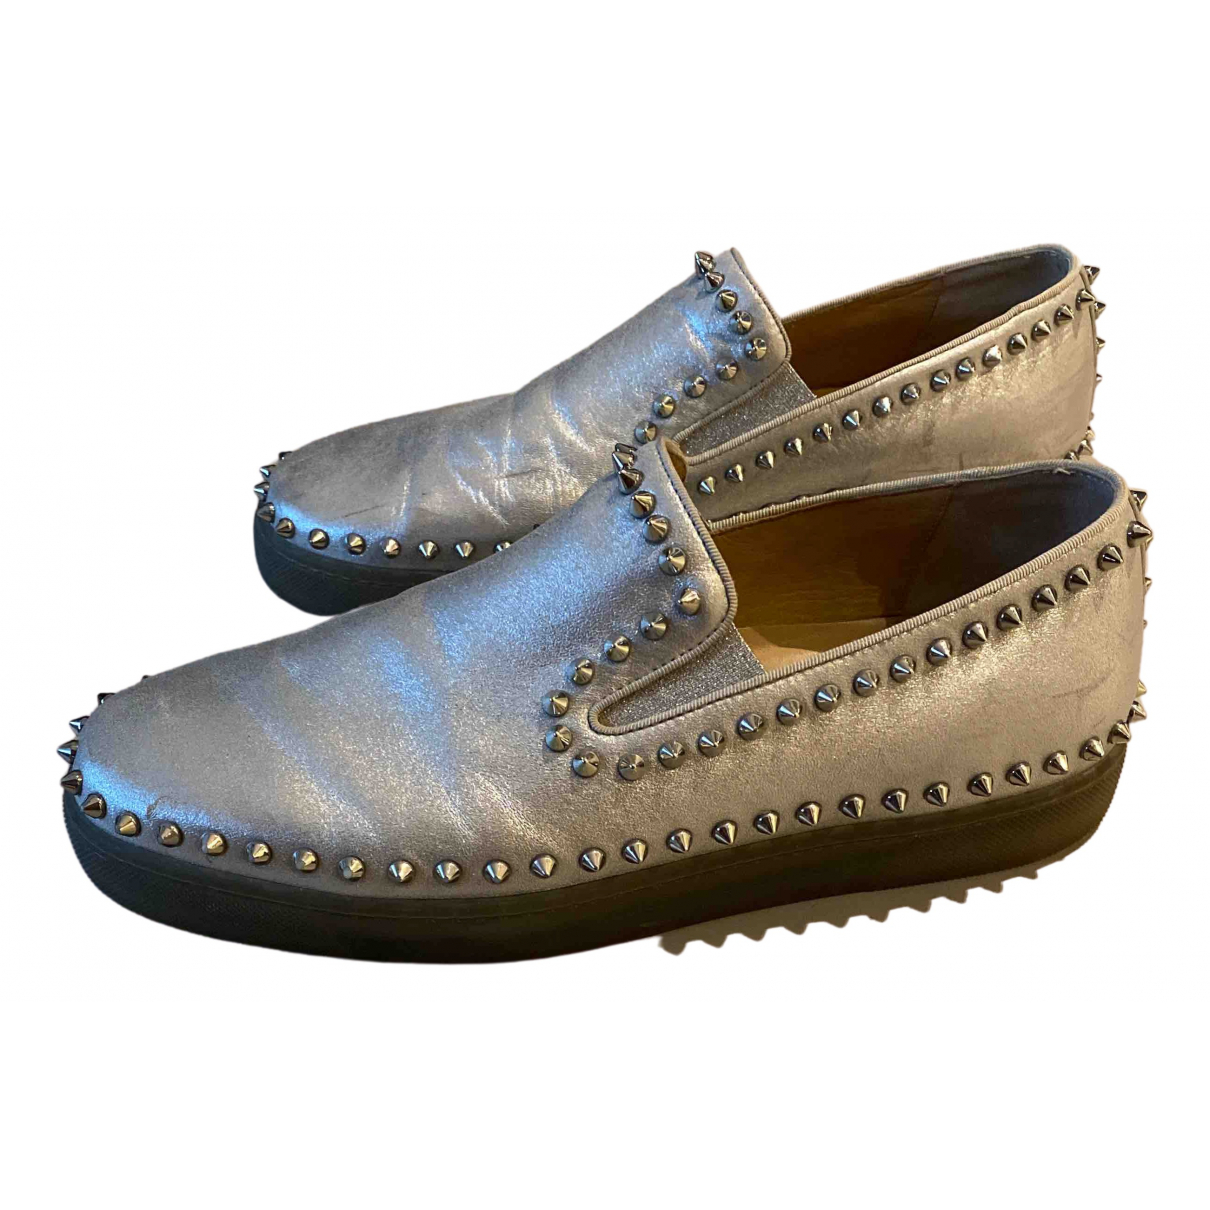 Christian Louboutin Pik Boat Silver Leather Trainers for Men 42 EU